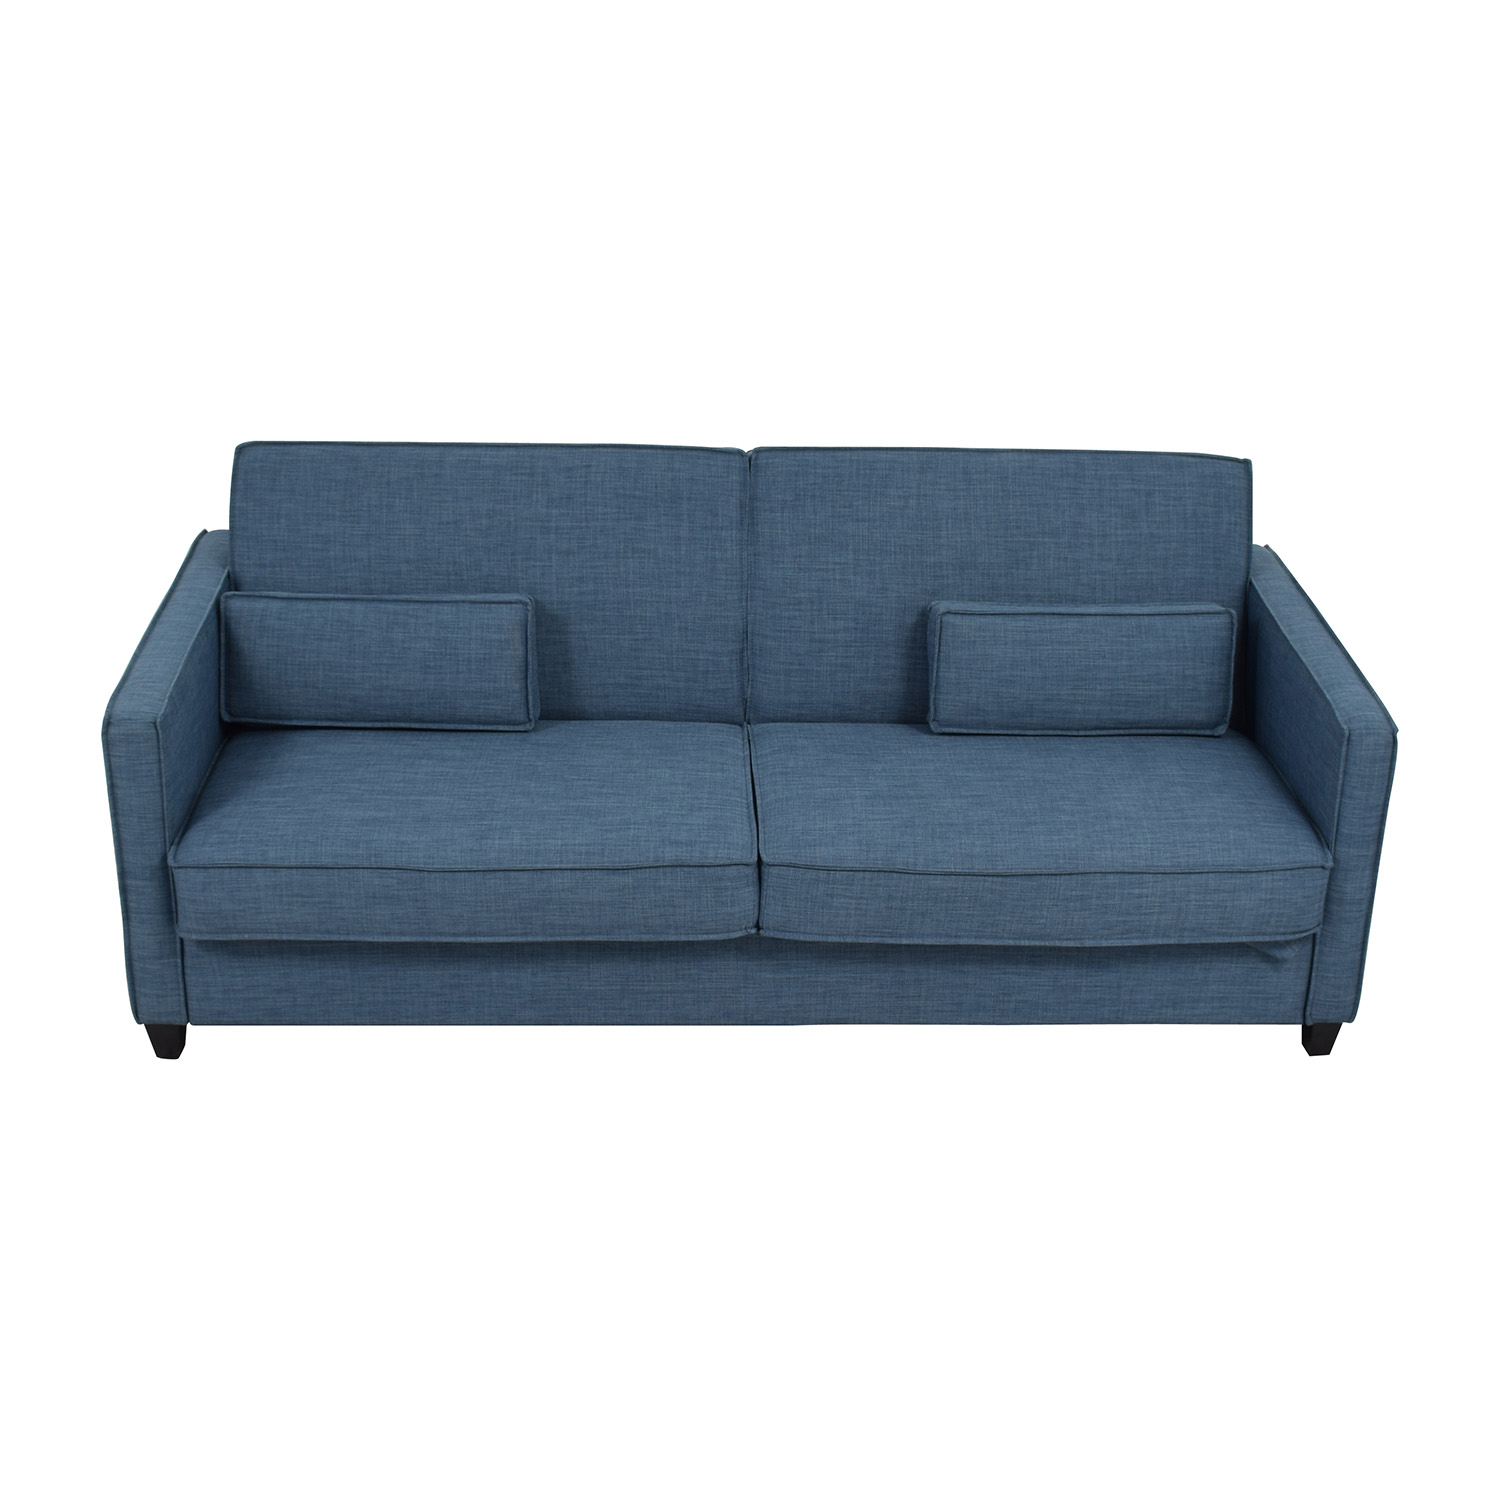 34% OFF - Blue Sofa with Two Throw Lumbar Pillows / Sofas